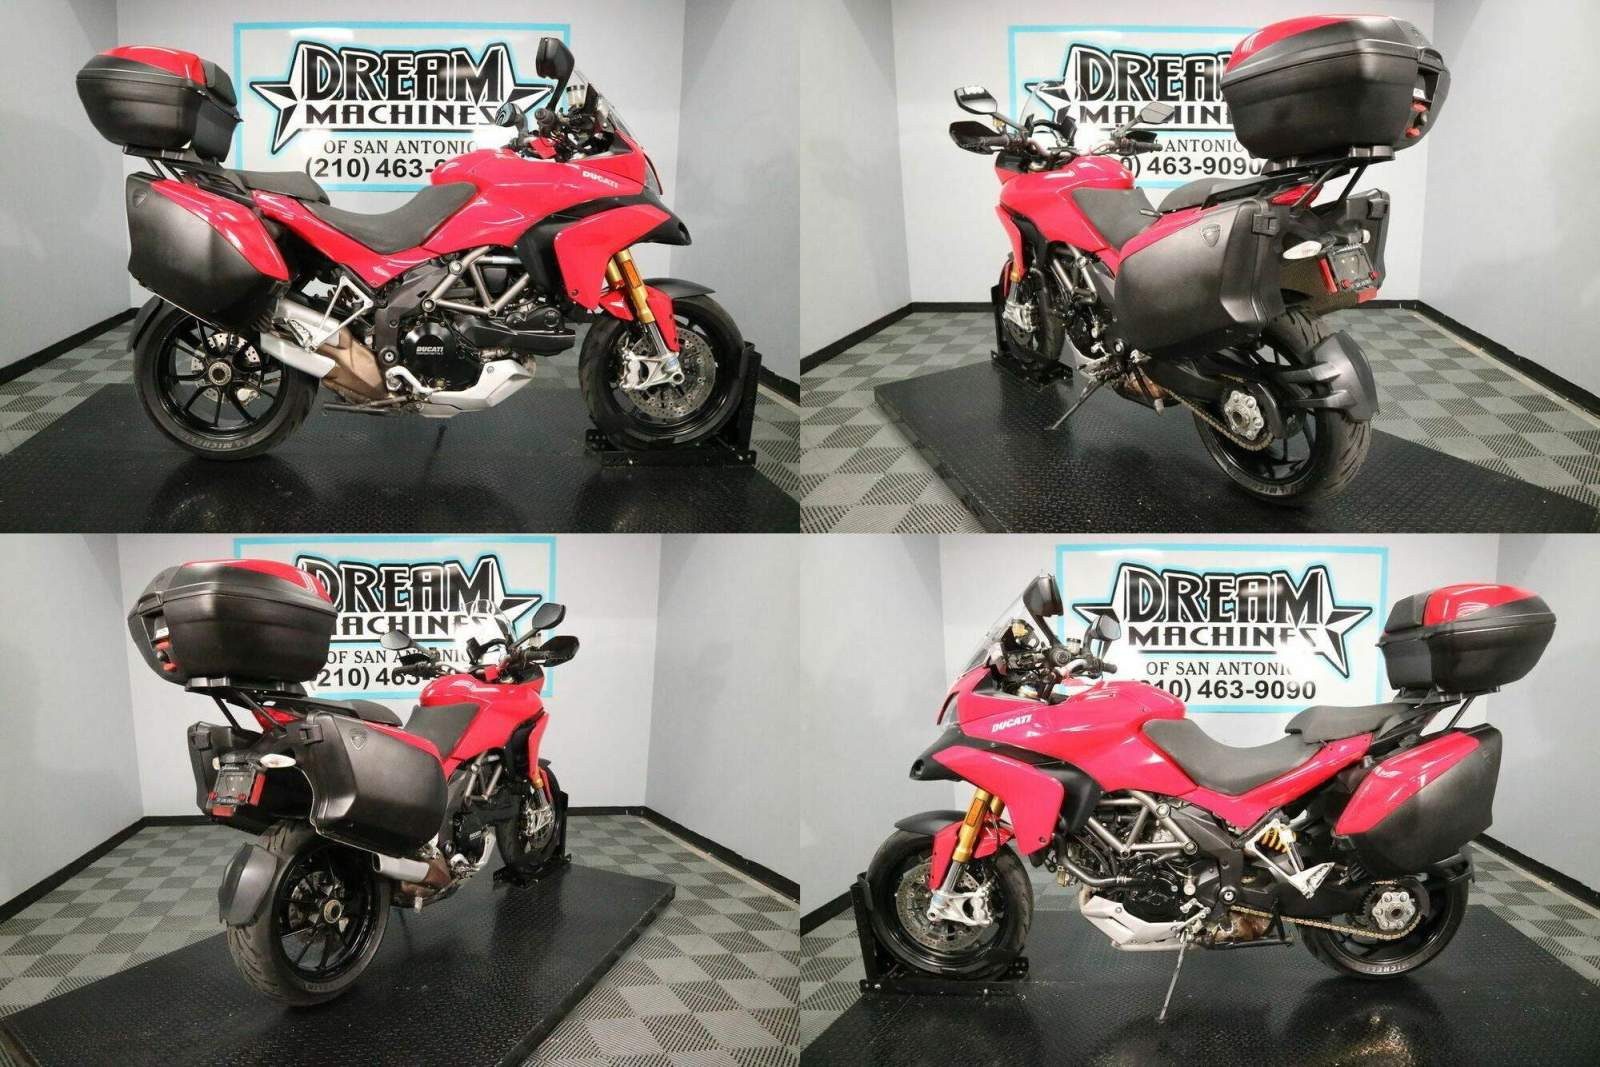 2010 Ducati Multistrada 1200 S Touring Edition Red used for sale craigslist